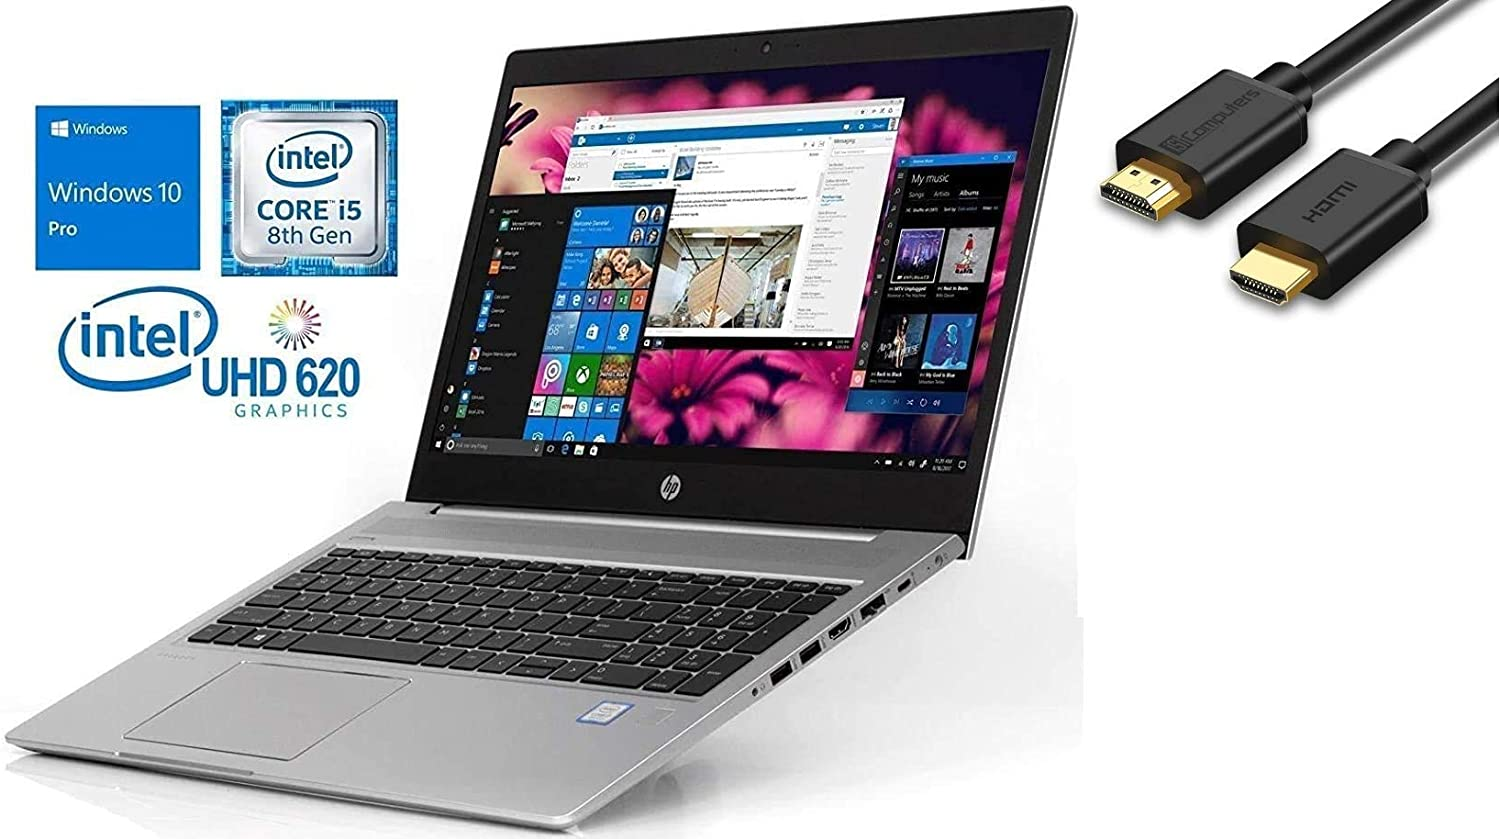 "HP Probook 15.6"" HD Business Laptop, Intel Quad-Core i5, 8GB DDR4 RAM, 256GB PCIe NVMe M.2 SSD, Windows 10 Professional 64-bit"